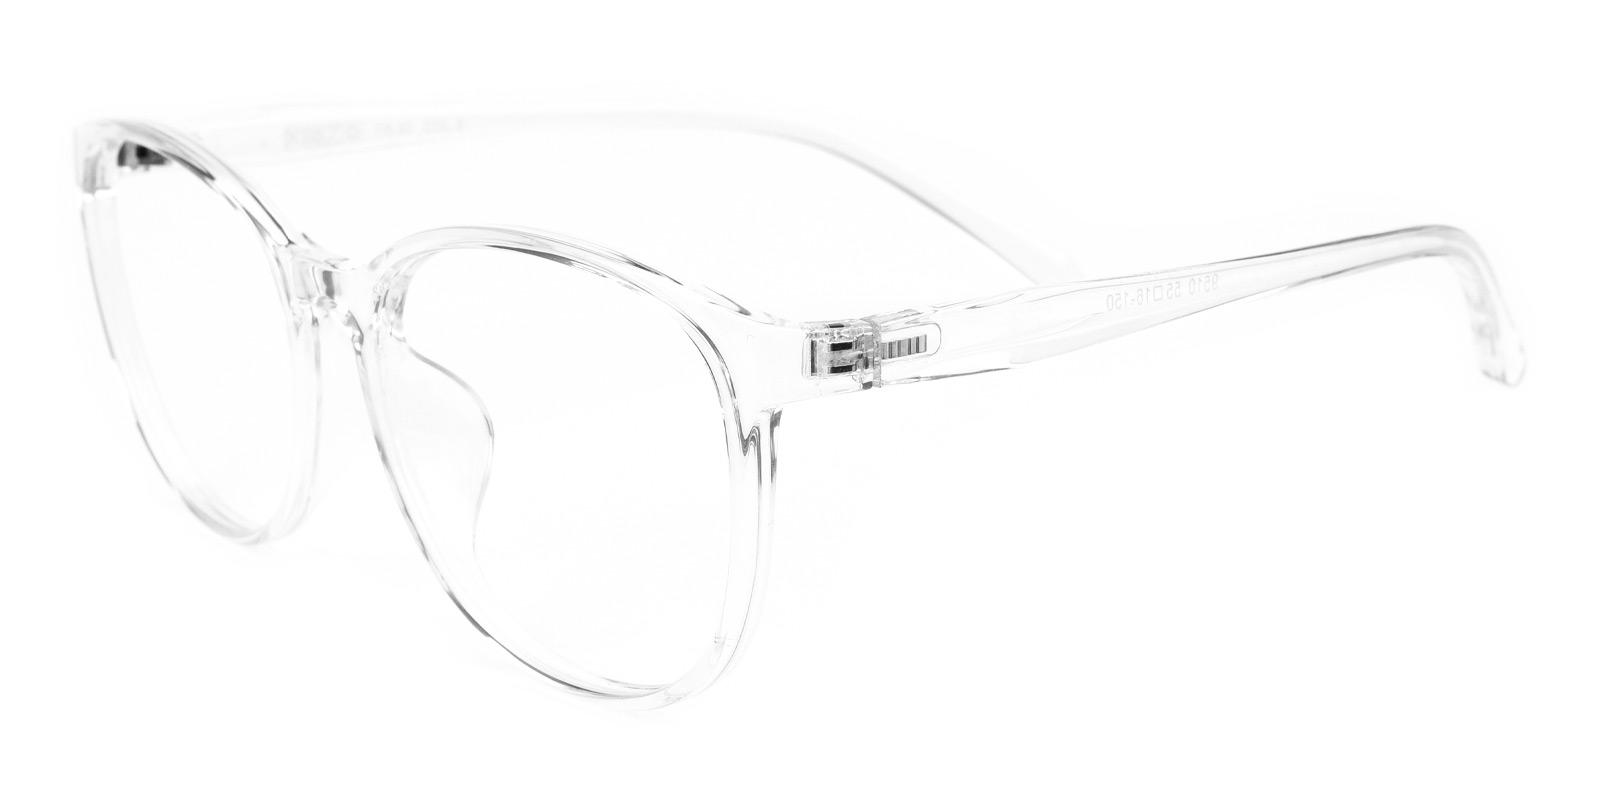 Jay-Translucent-Round-TR-Eyeglasses-additional1